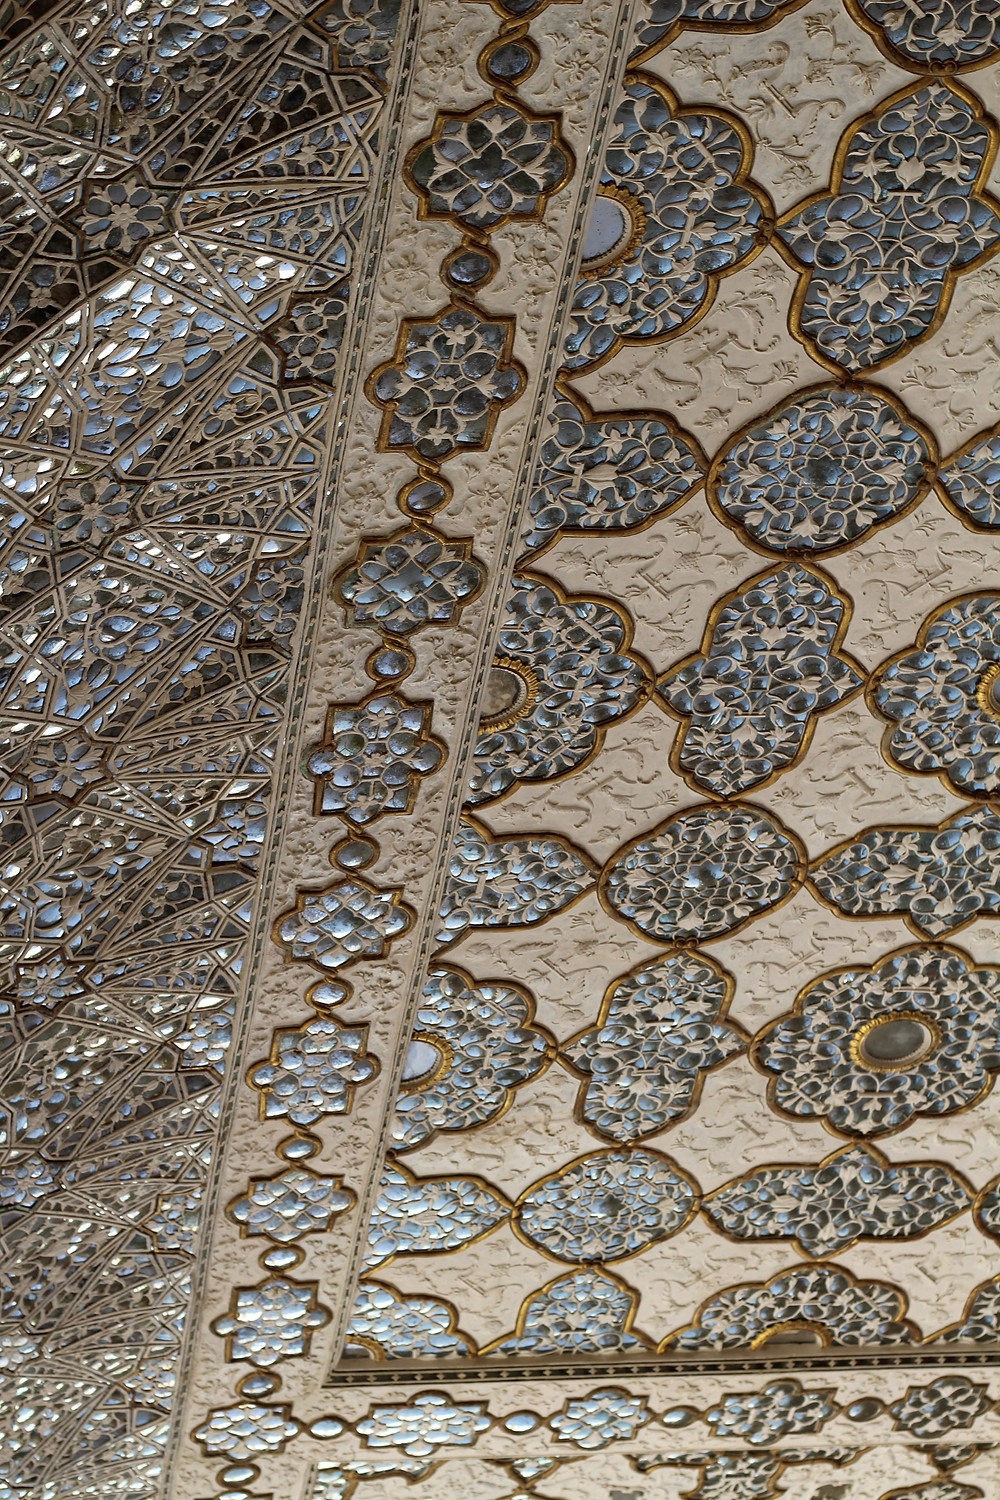 Hall of Mirrors, Amber Palace